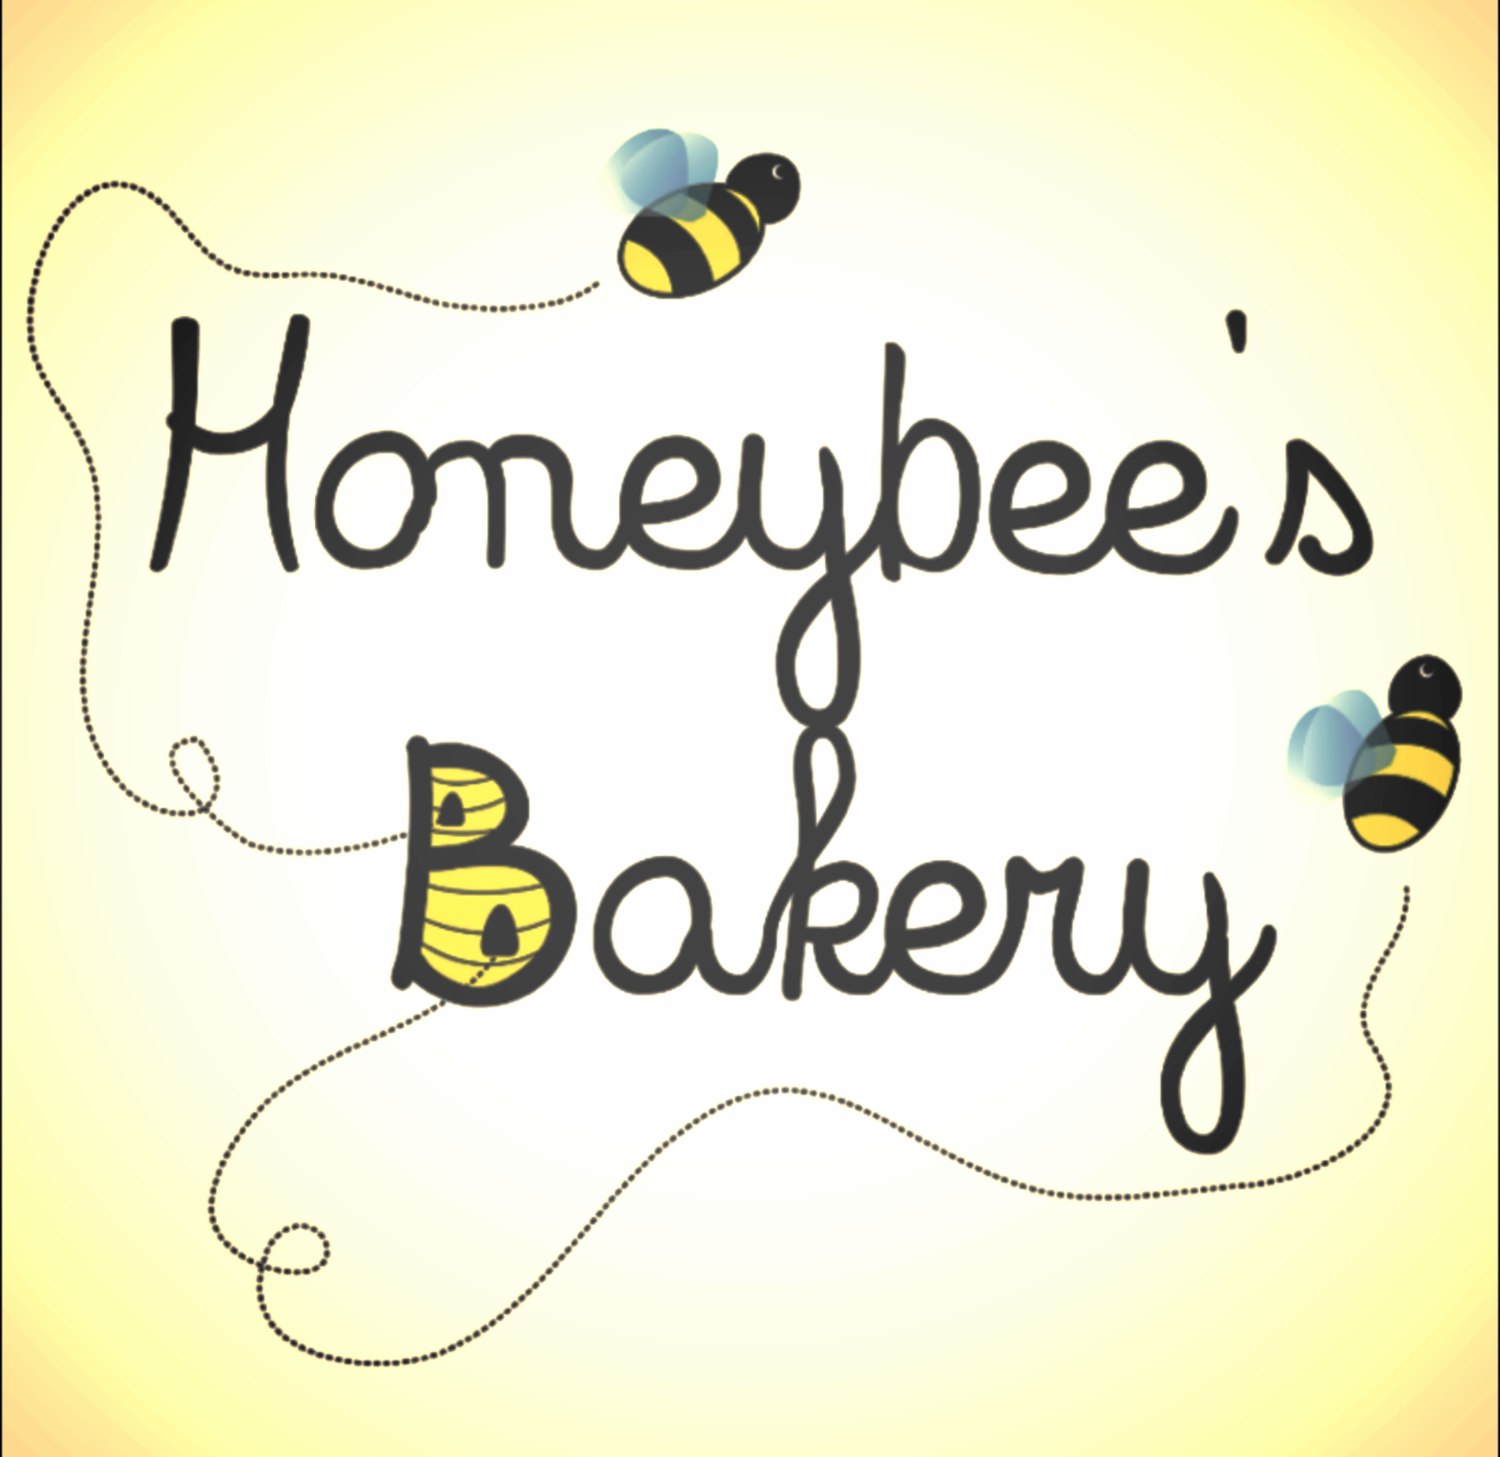 Honeybee's Bakery